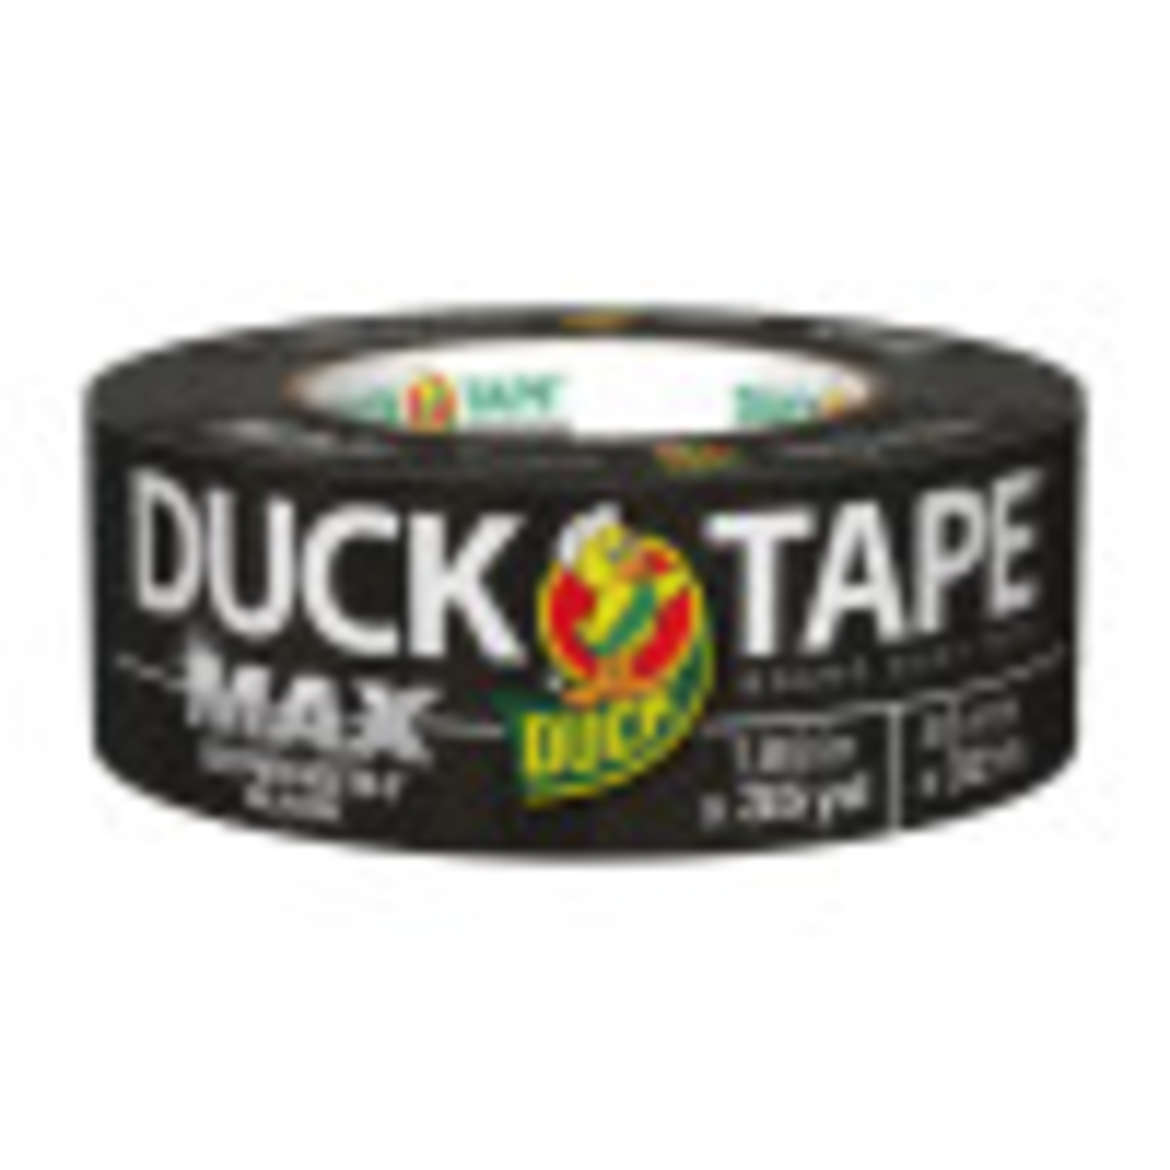 Duck Max™ Duct Tape